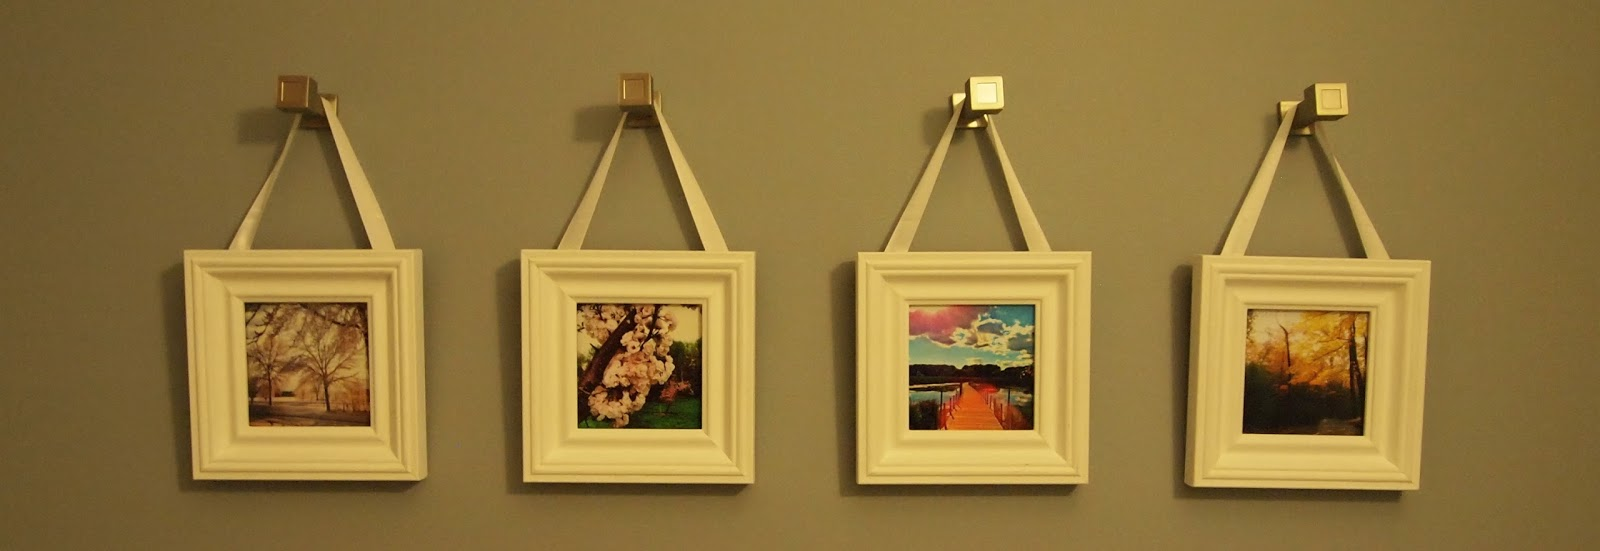 Craft Room Confidential: The Four Seasons Photo Gallery